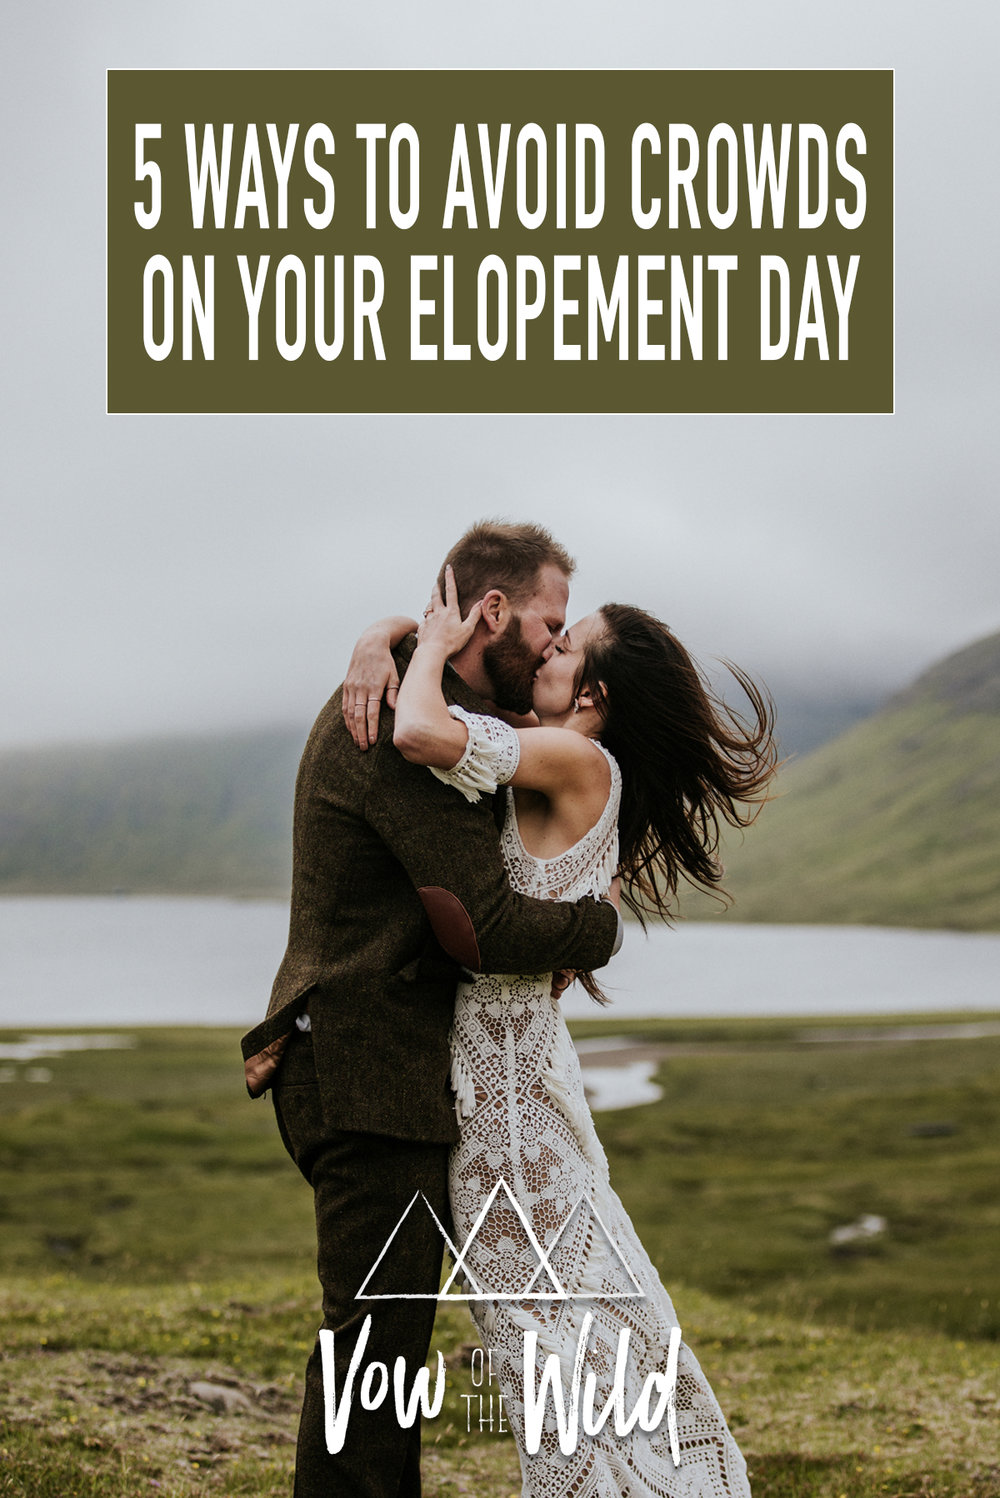 5 Ways To Avoid Crowds On Your Elopement Day | Vow of the Wild